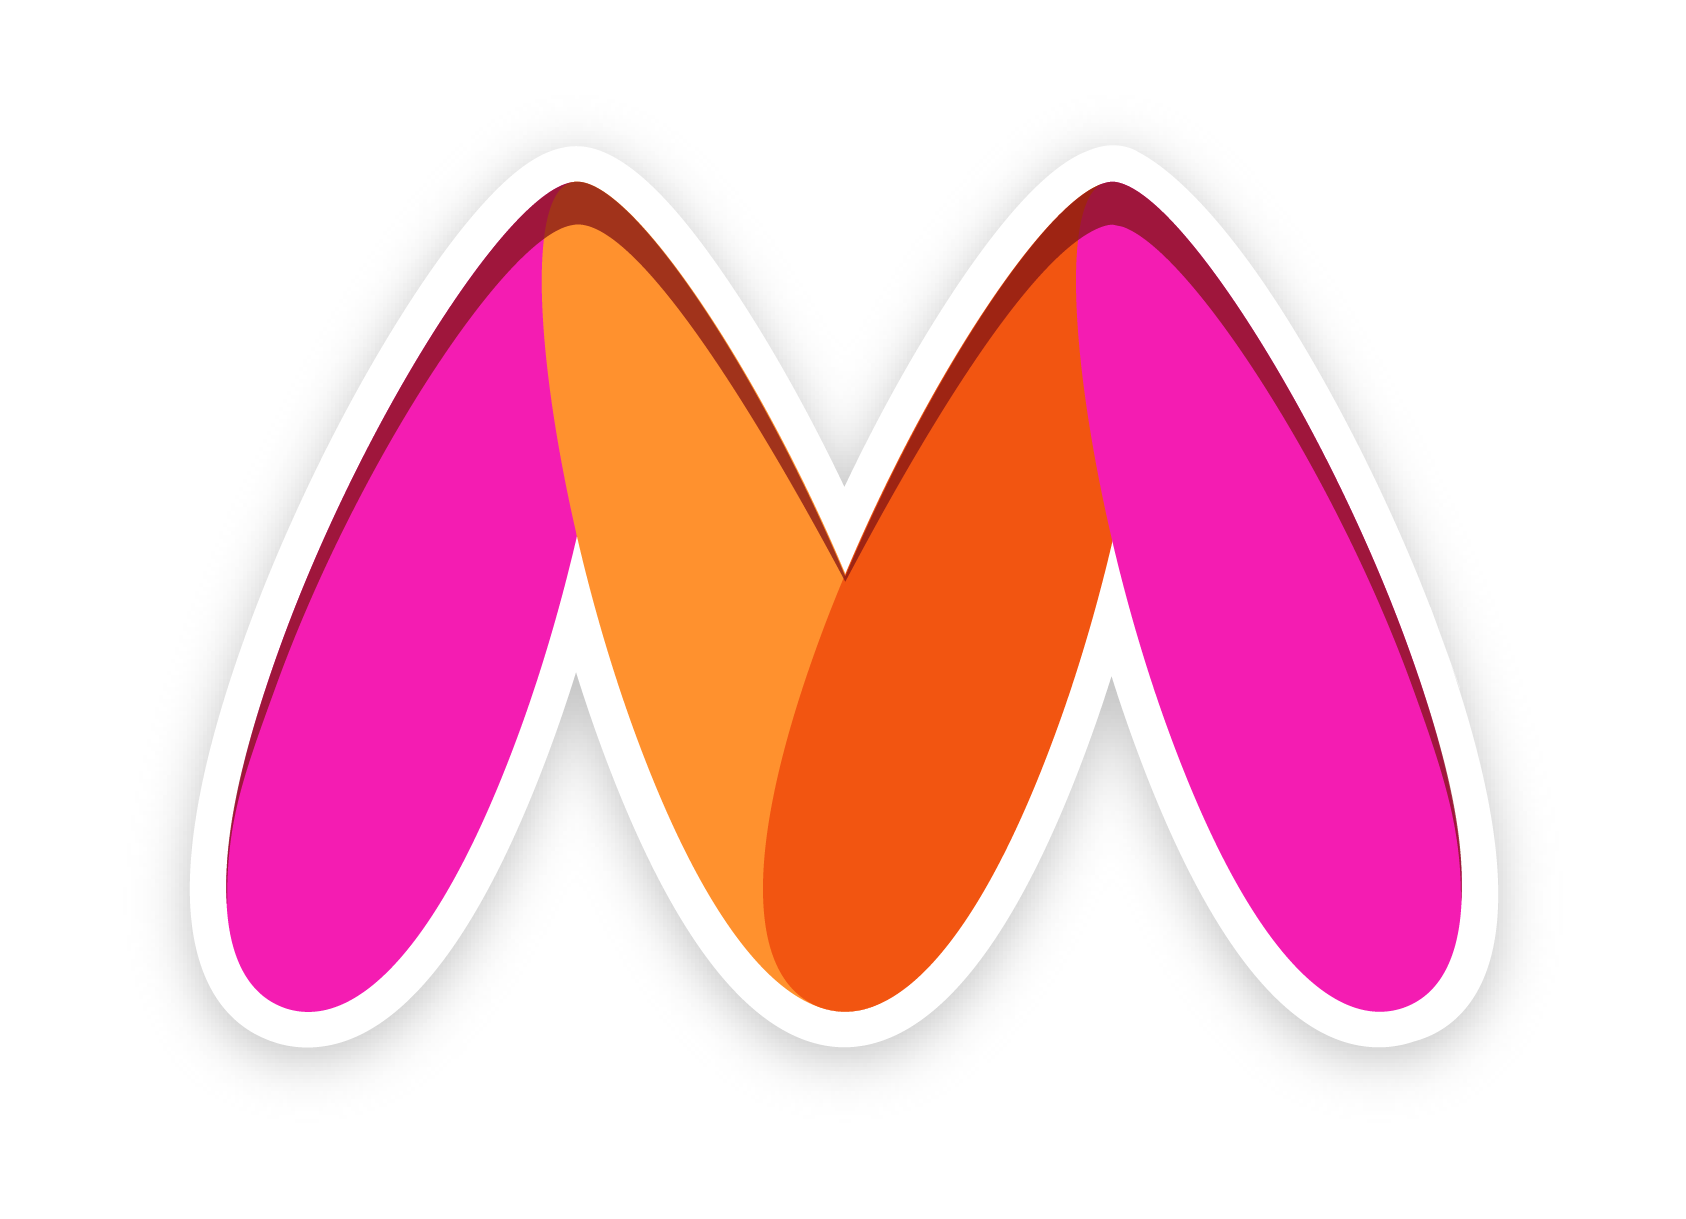 Myntra adds 2000 new Home and Living styles with the launch of leading retailer 'Home Centre' on its platform